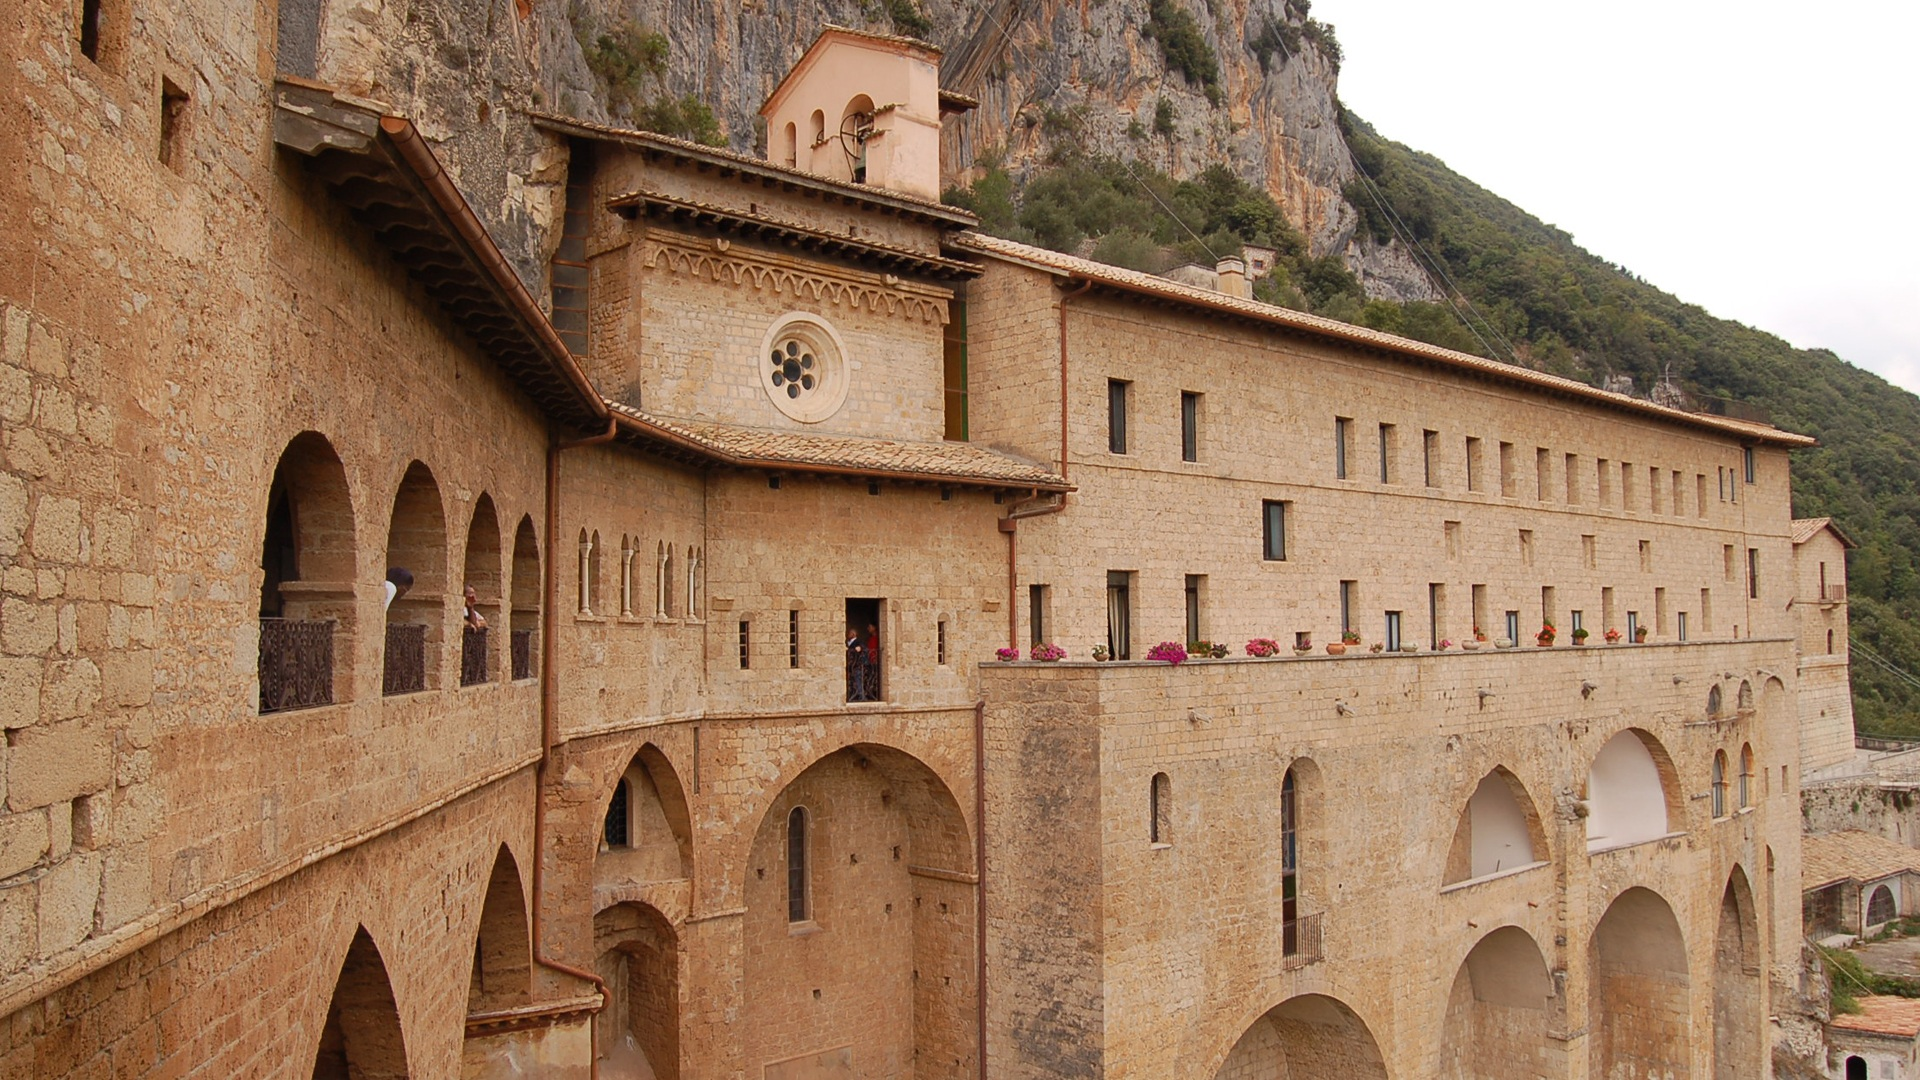 Subiaco - Site of St. Benedict's first monastery